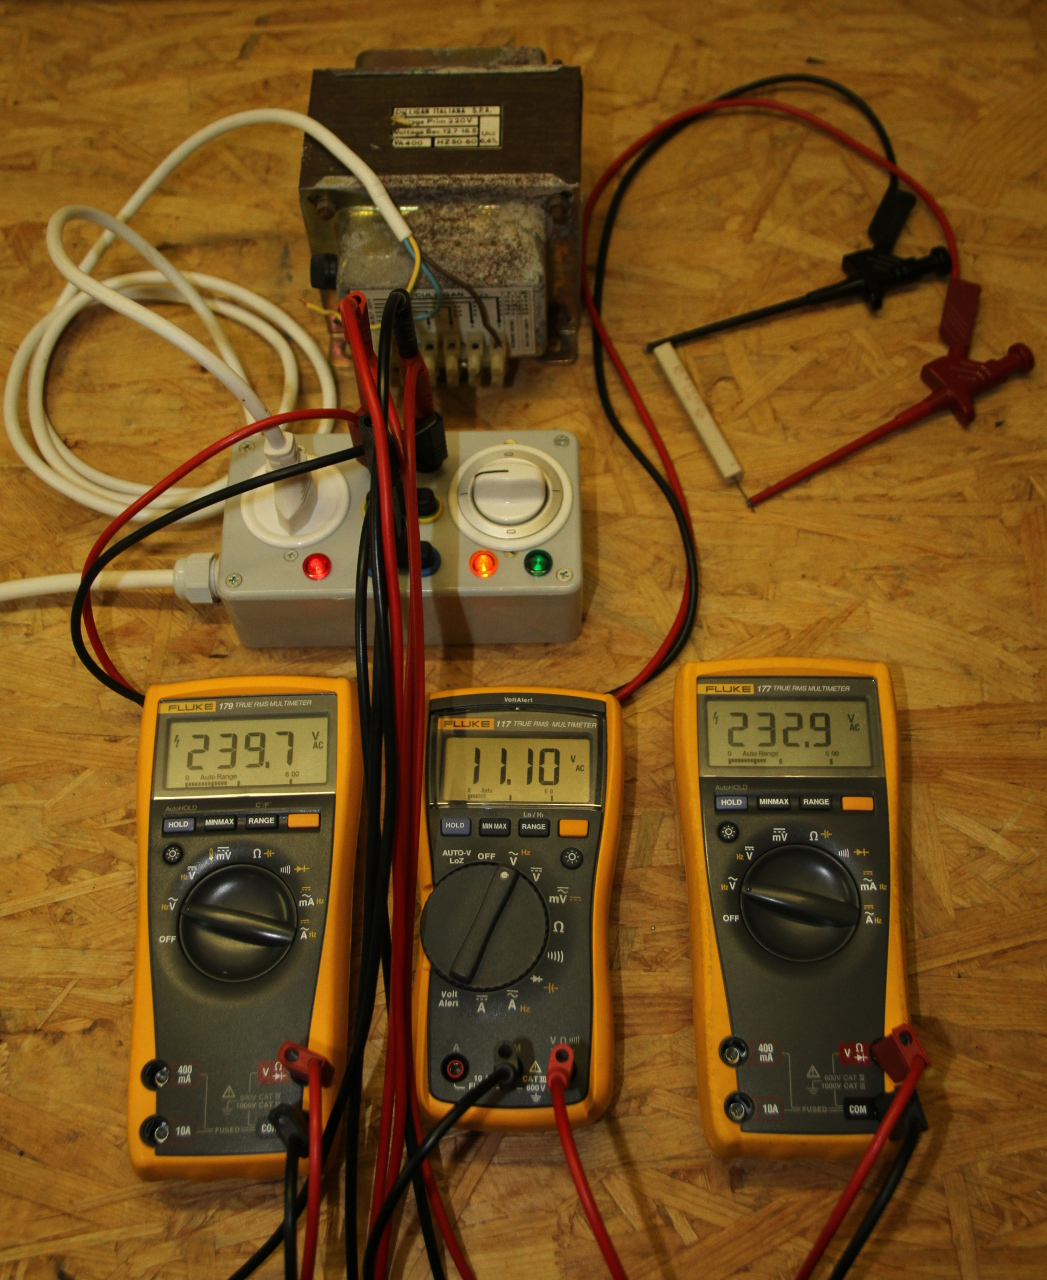 Measuring The Power Factor With Three Voltmeters Method Ac Circuit Experiment Box Electrical Training Equipment Basic A Transformer Without Load Being Measured